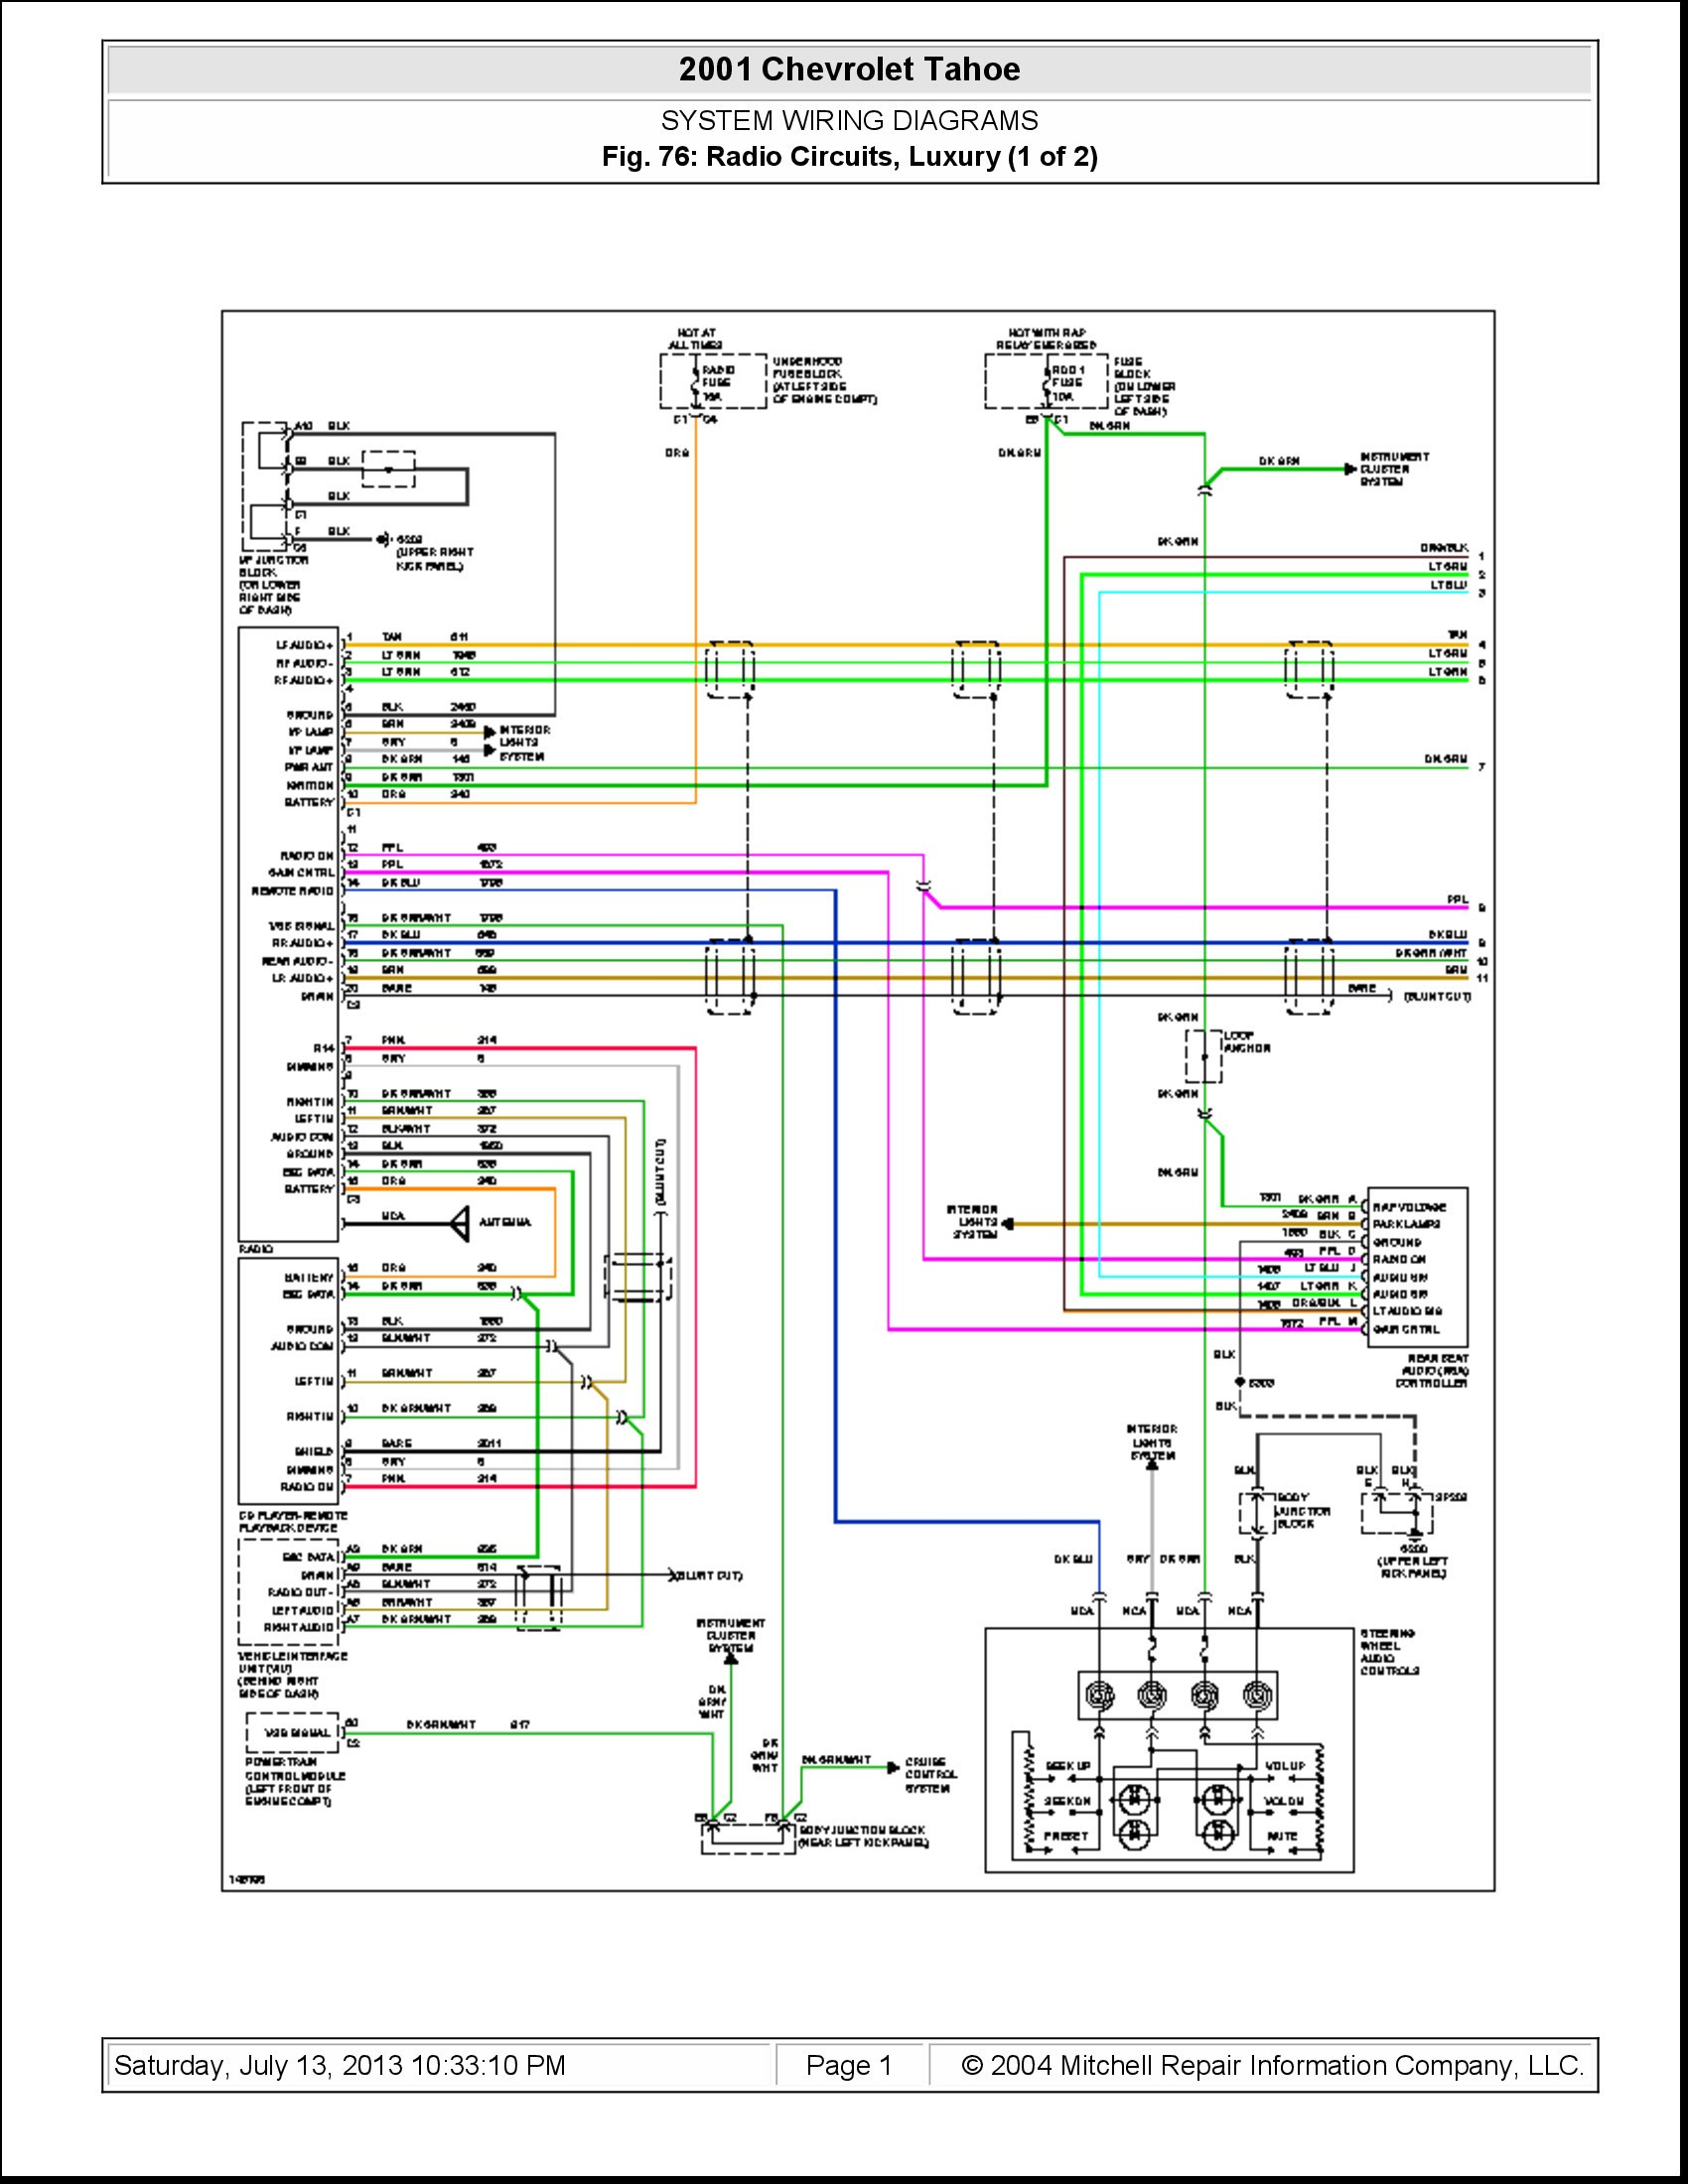 2001 Chevy Blazer Radio Wiring Diagram